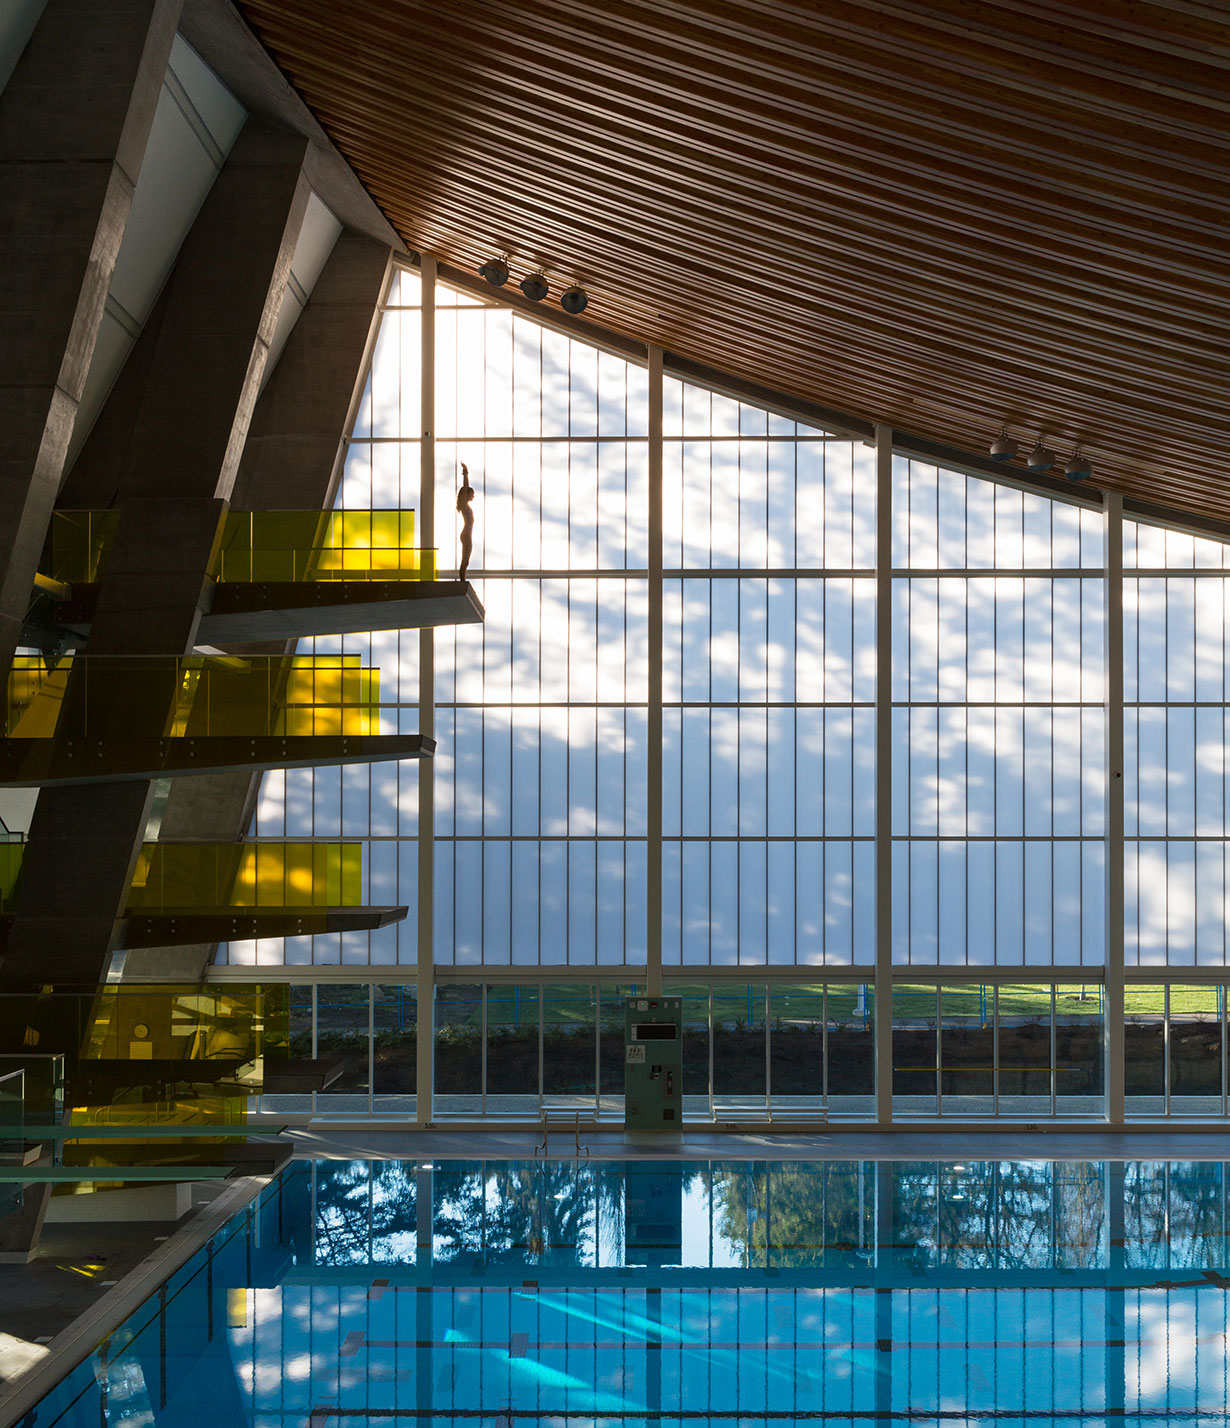 Ellisdon grandview heights aquatic centre for The heights swimming pool timetable